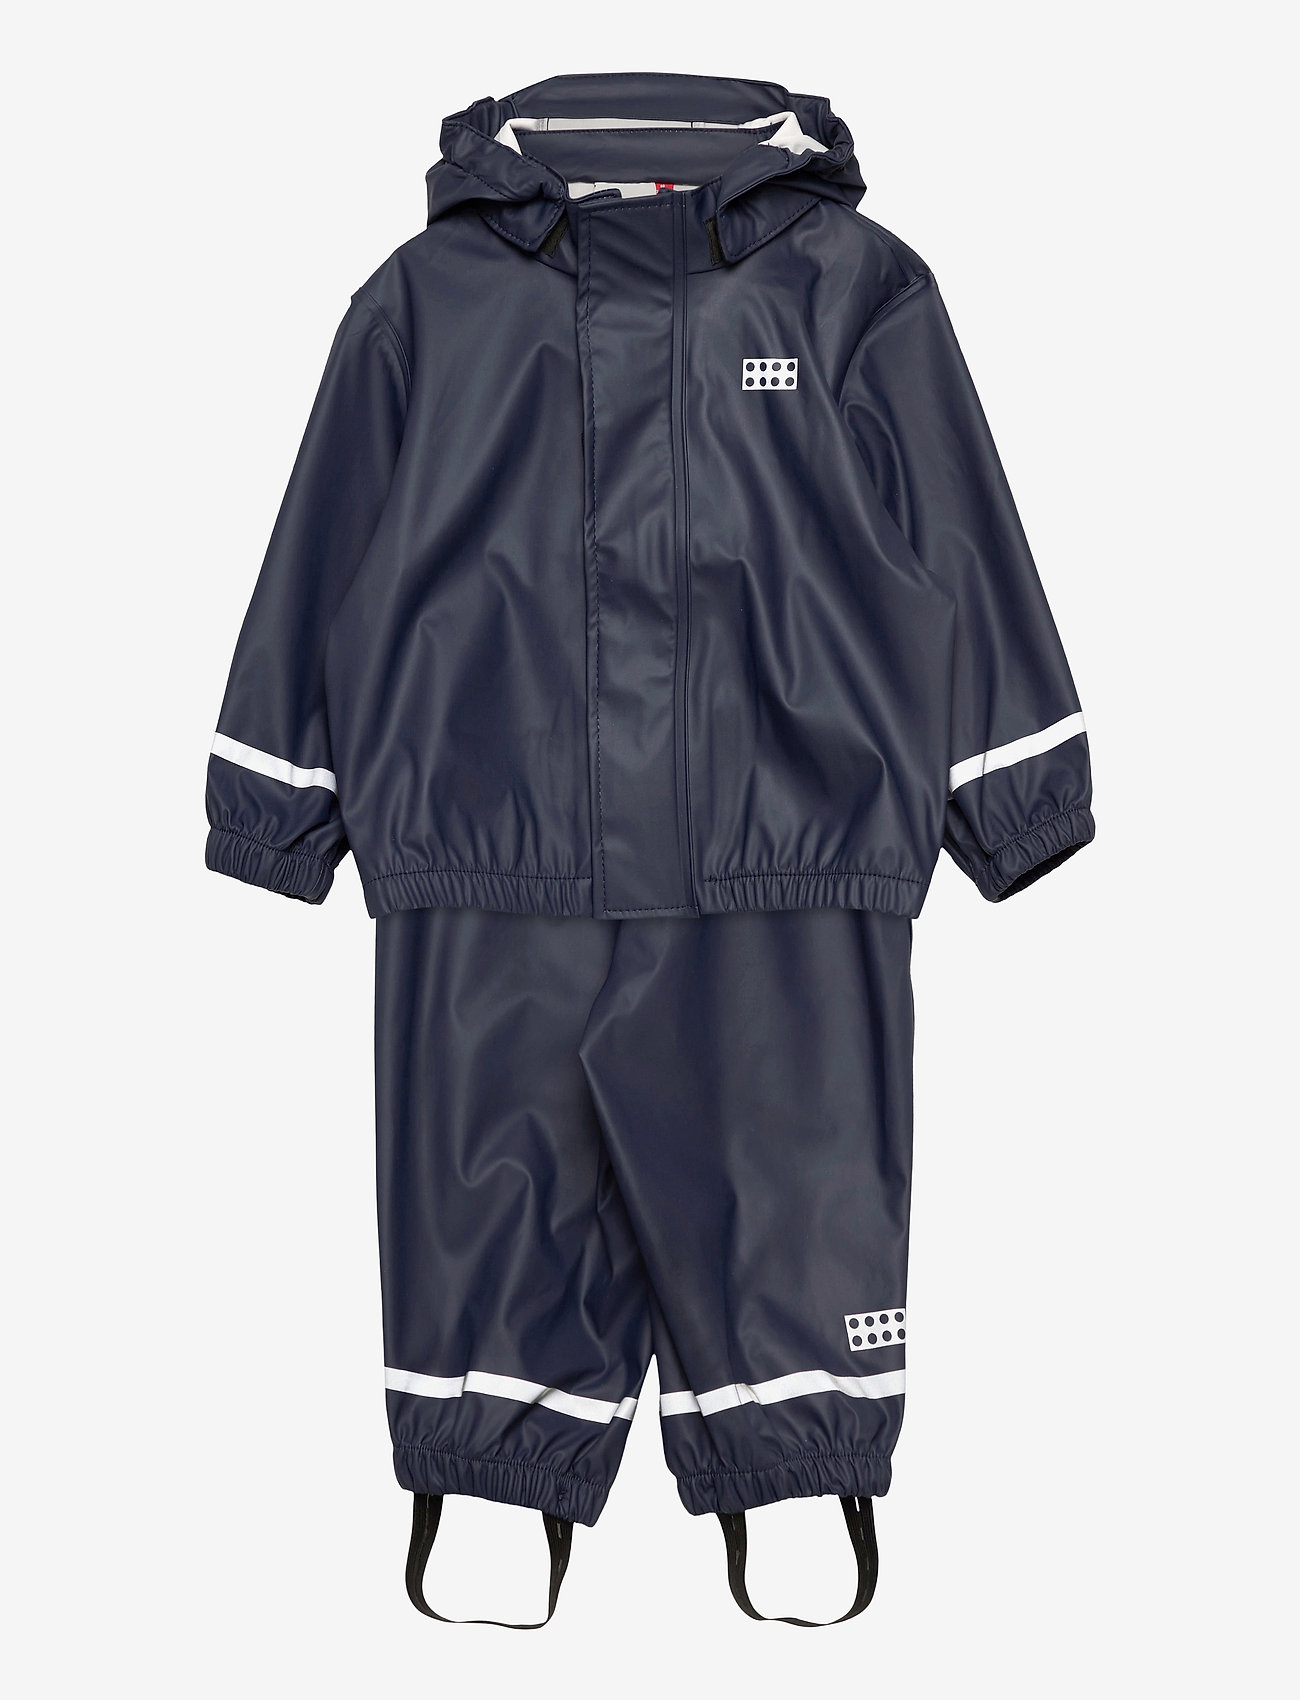 Lego wear - LWJIVAN 200 - PU RAIN SET - ensembles - dark navy - 0